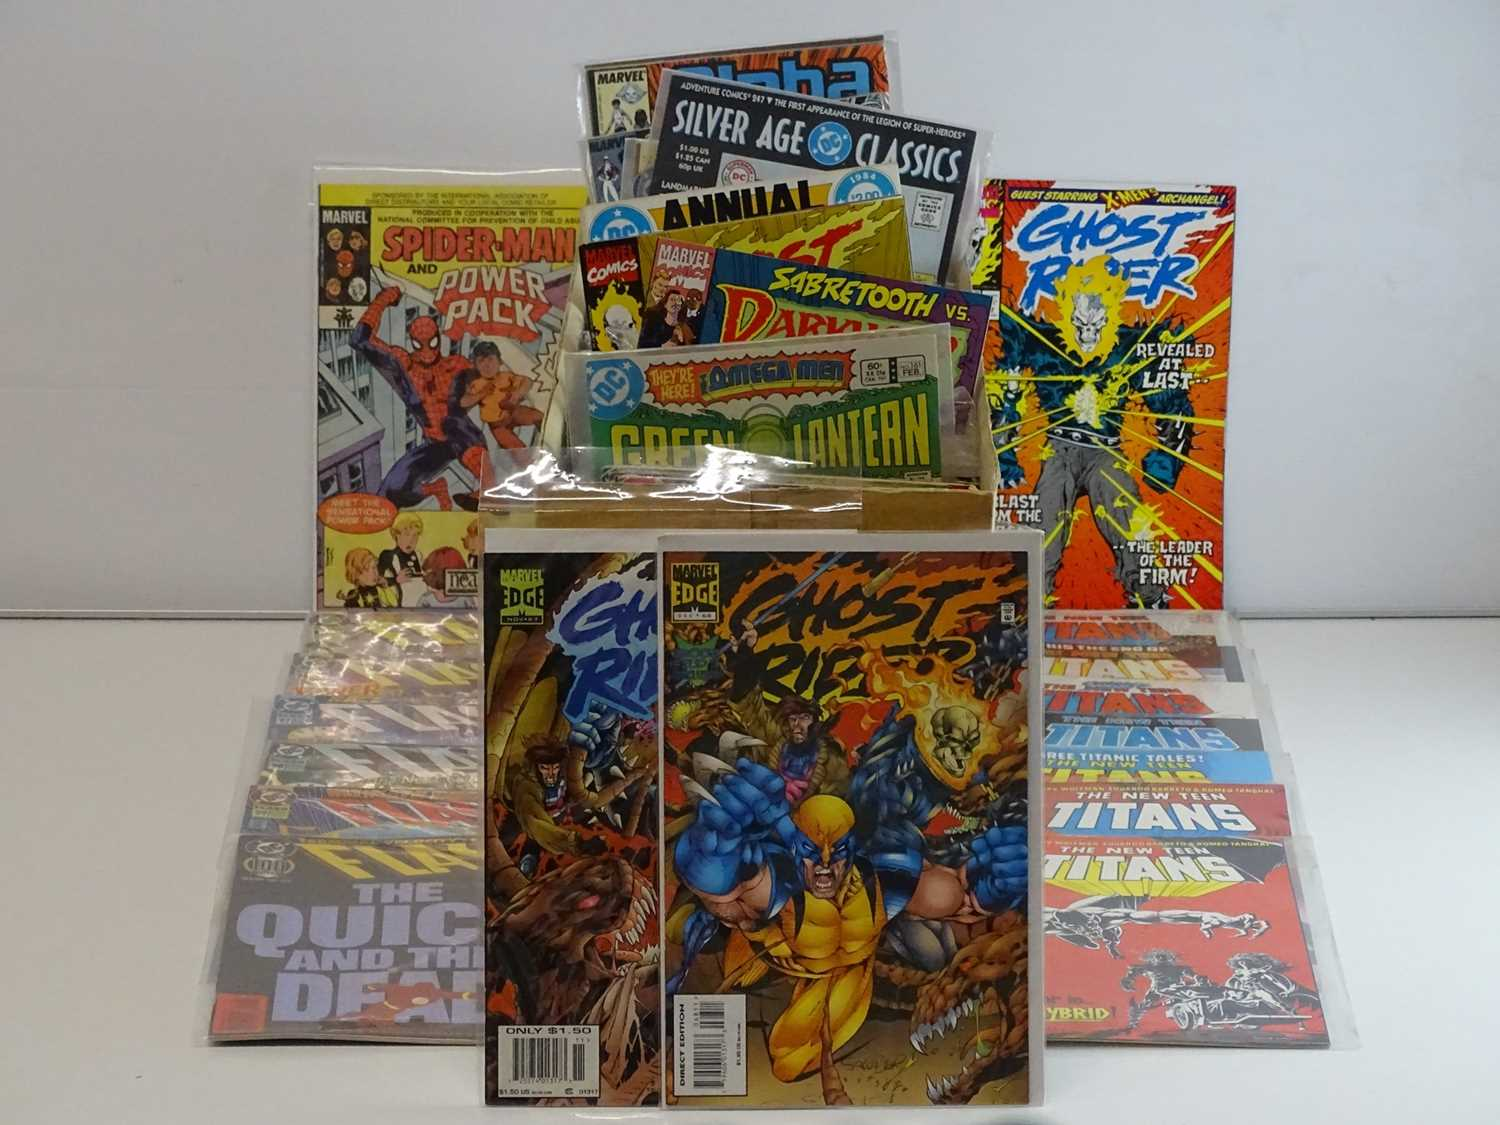 EXCALIBUR LUCKY DIP JOB LOT 300+ COMICS - Includes MARVEL, DC, INNOVATION, FLEETWAY, COMICO & Others